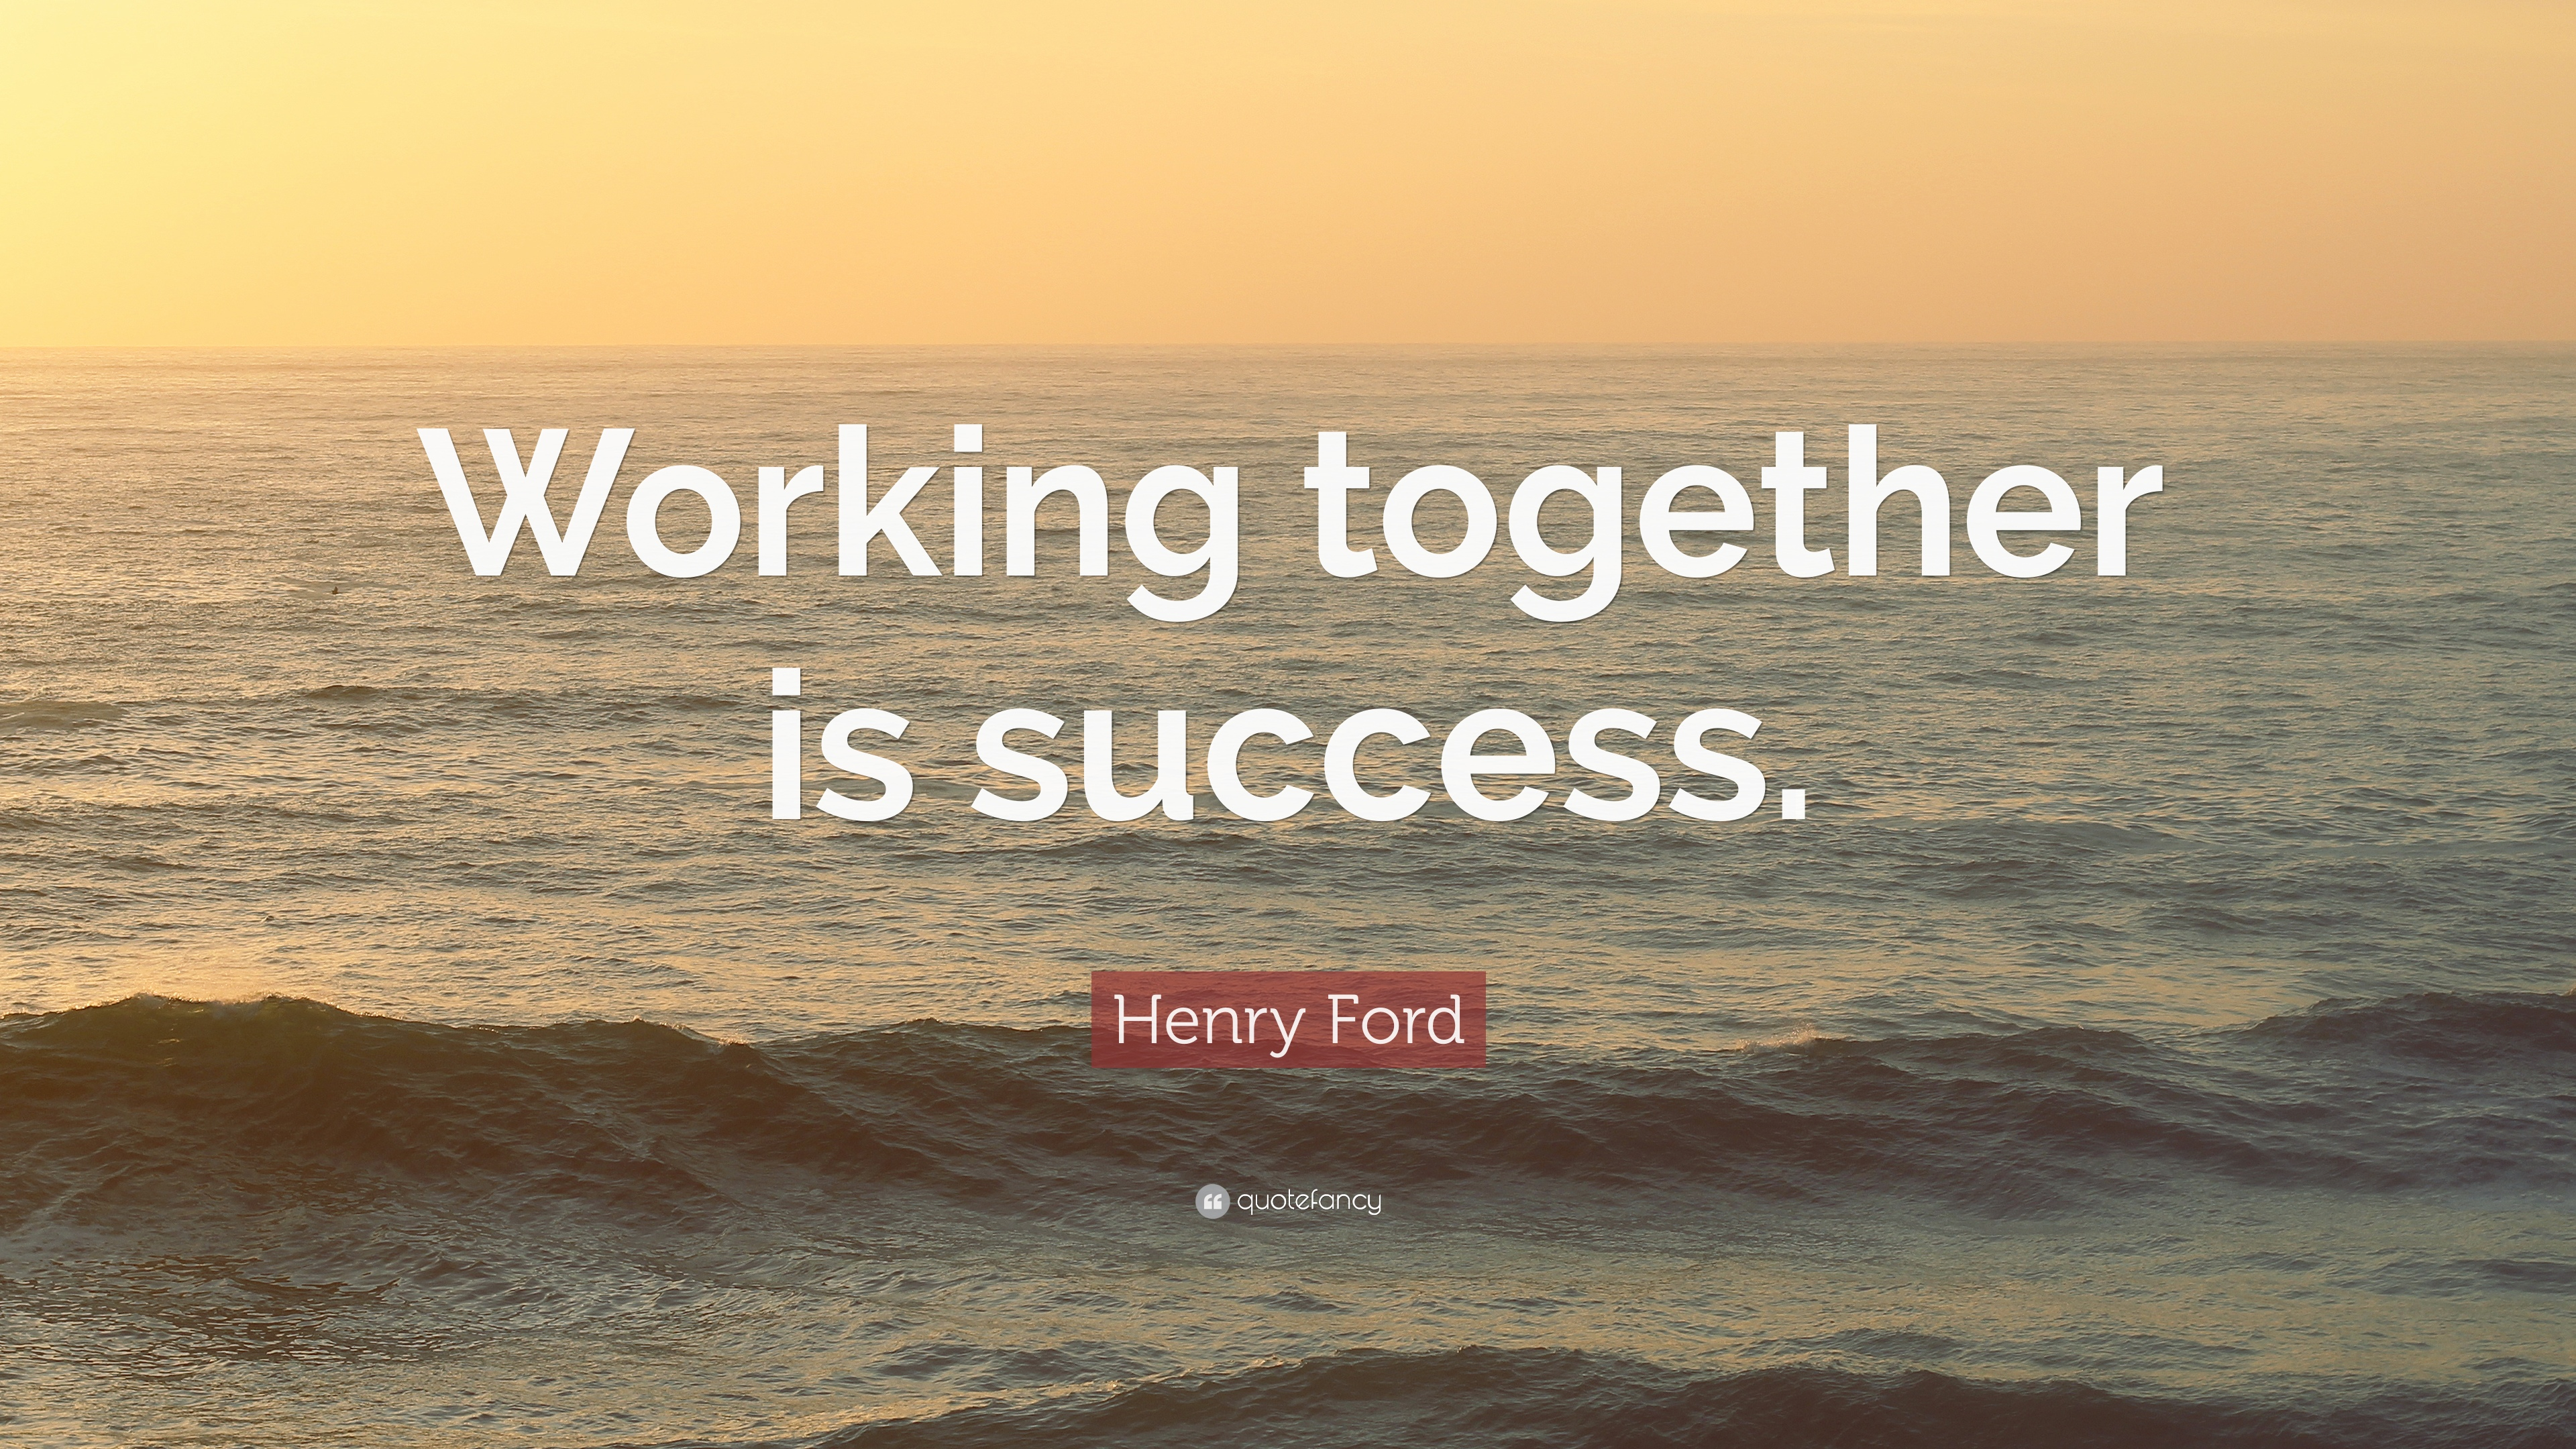 Elon Musk Quotes Wallpapers Henry Ford Quote Working Together Is Success 12